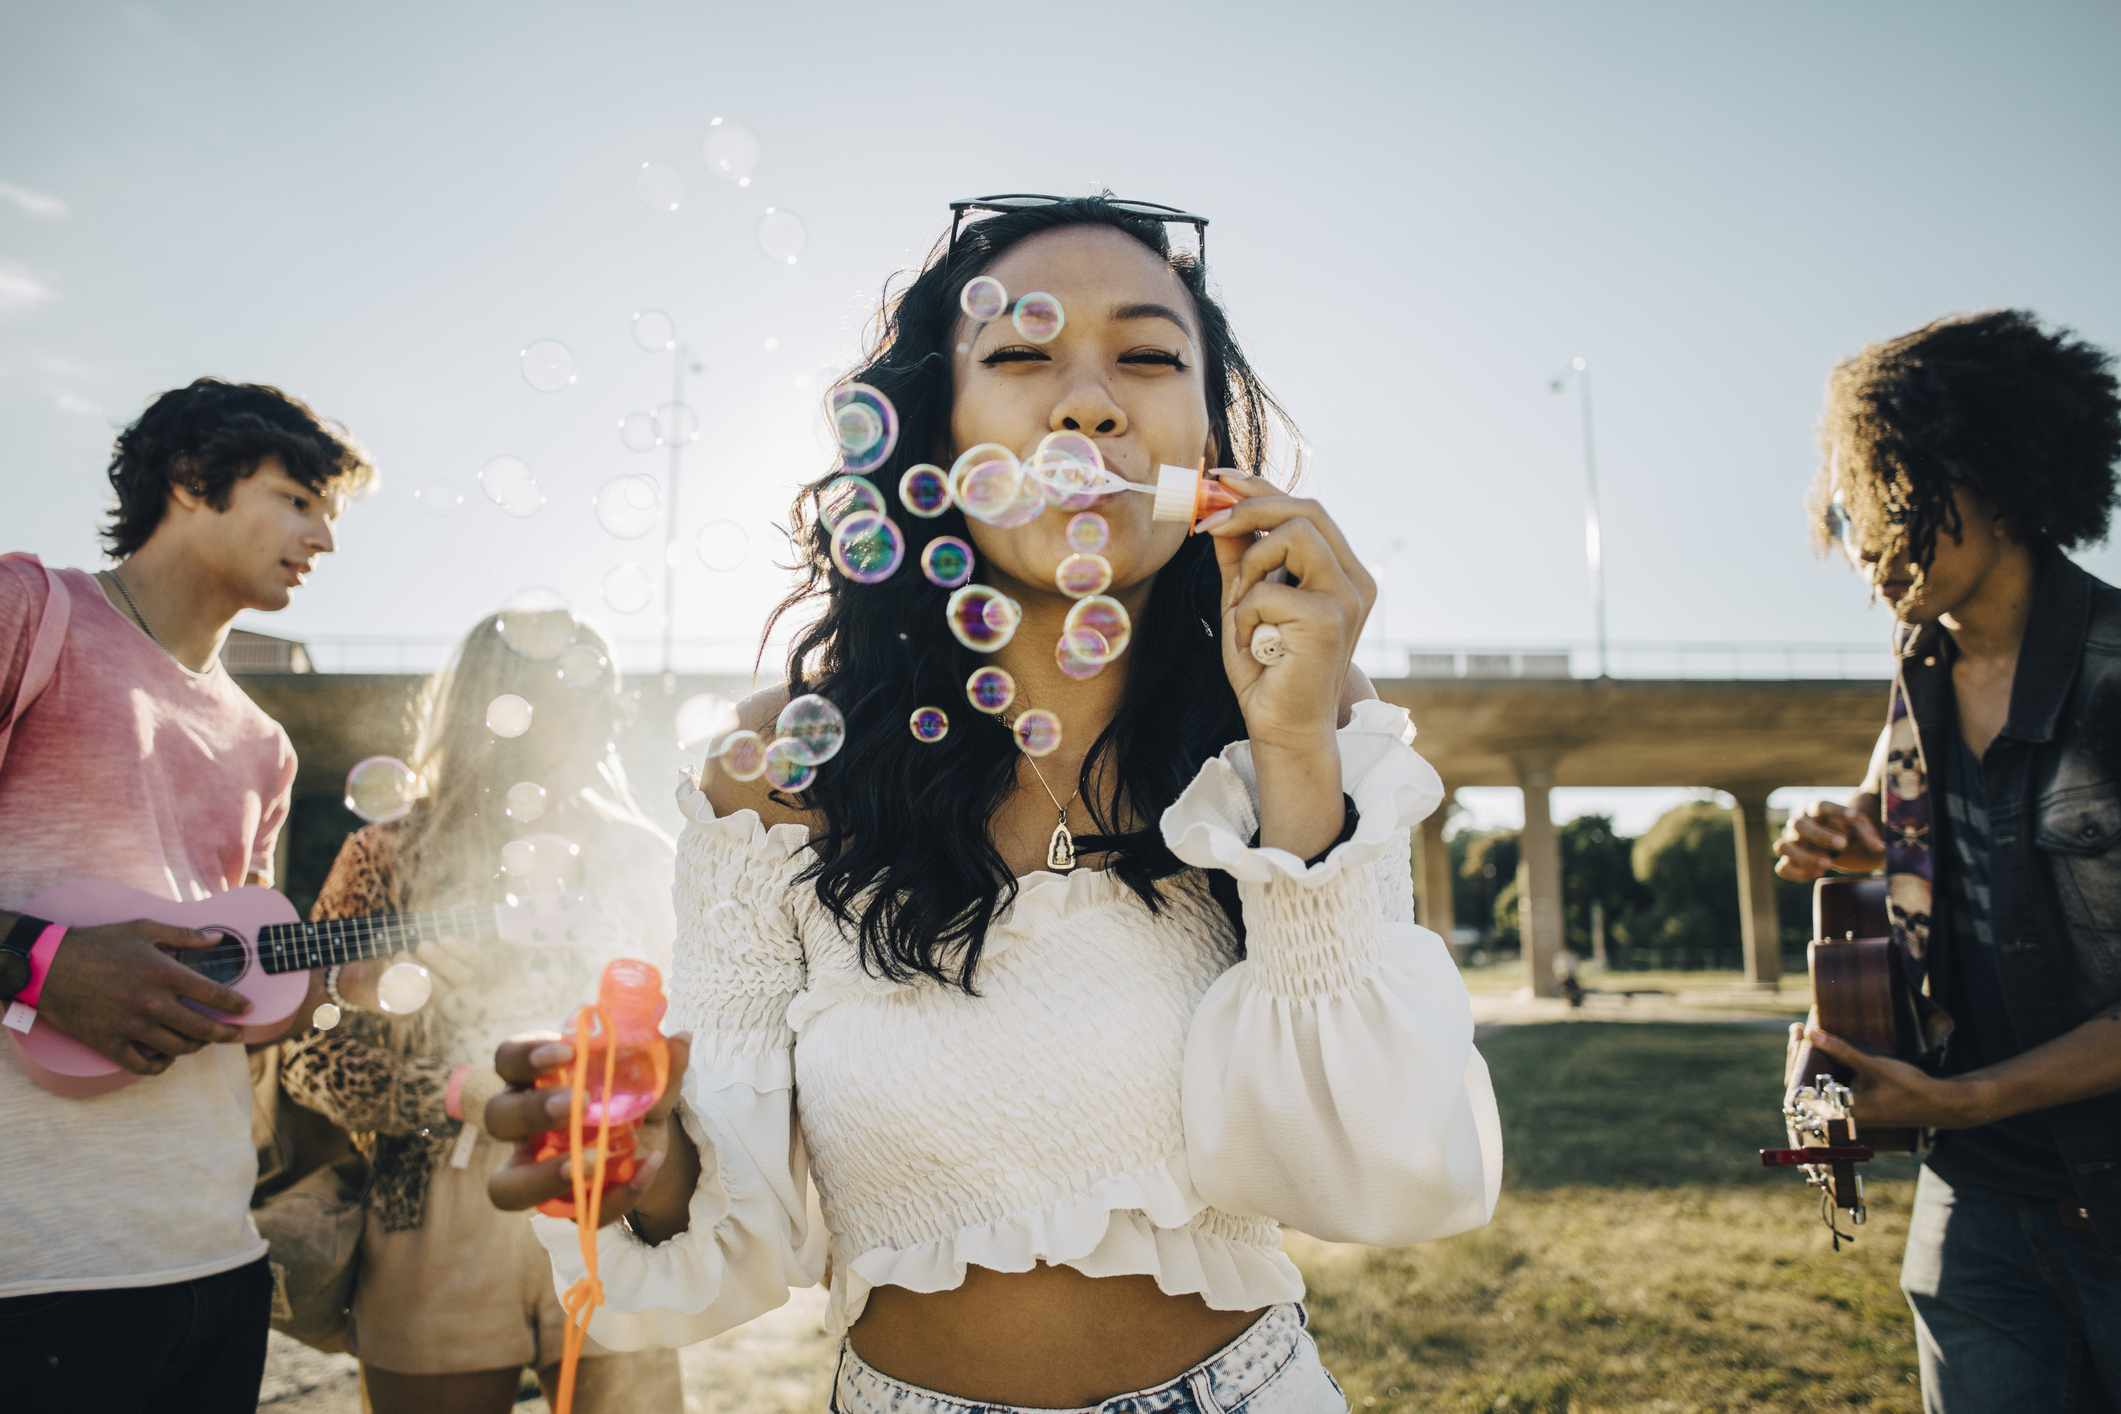 Young woman in crop top blows bubble at music festival